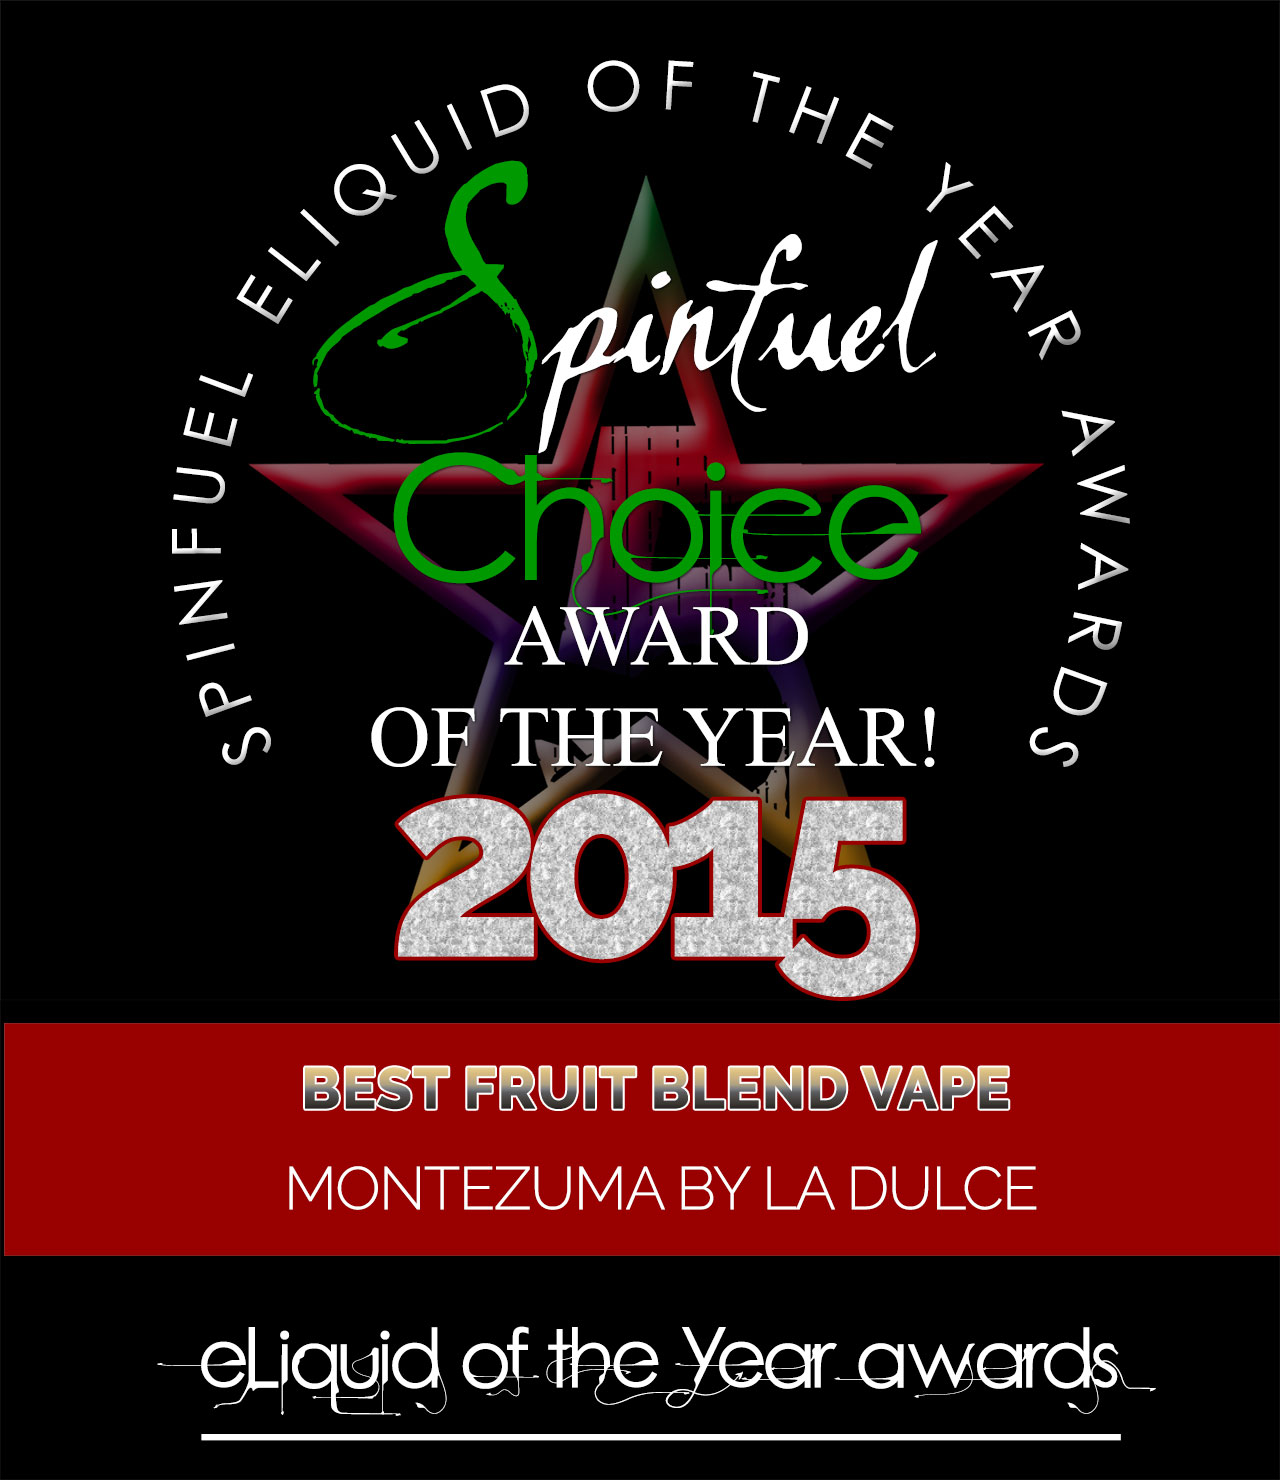 FRUITY-BLEND-MONTEZUMA - Spinfuel Choice Award 2015